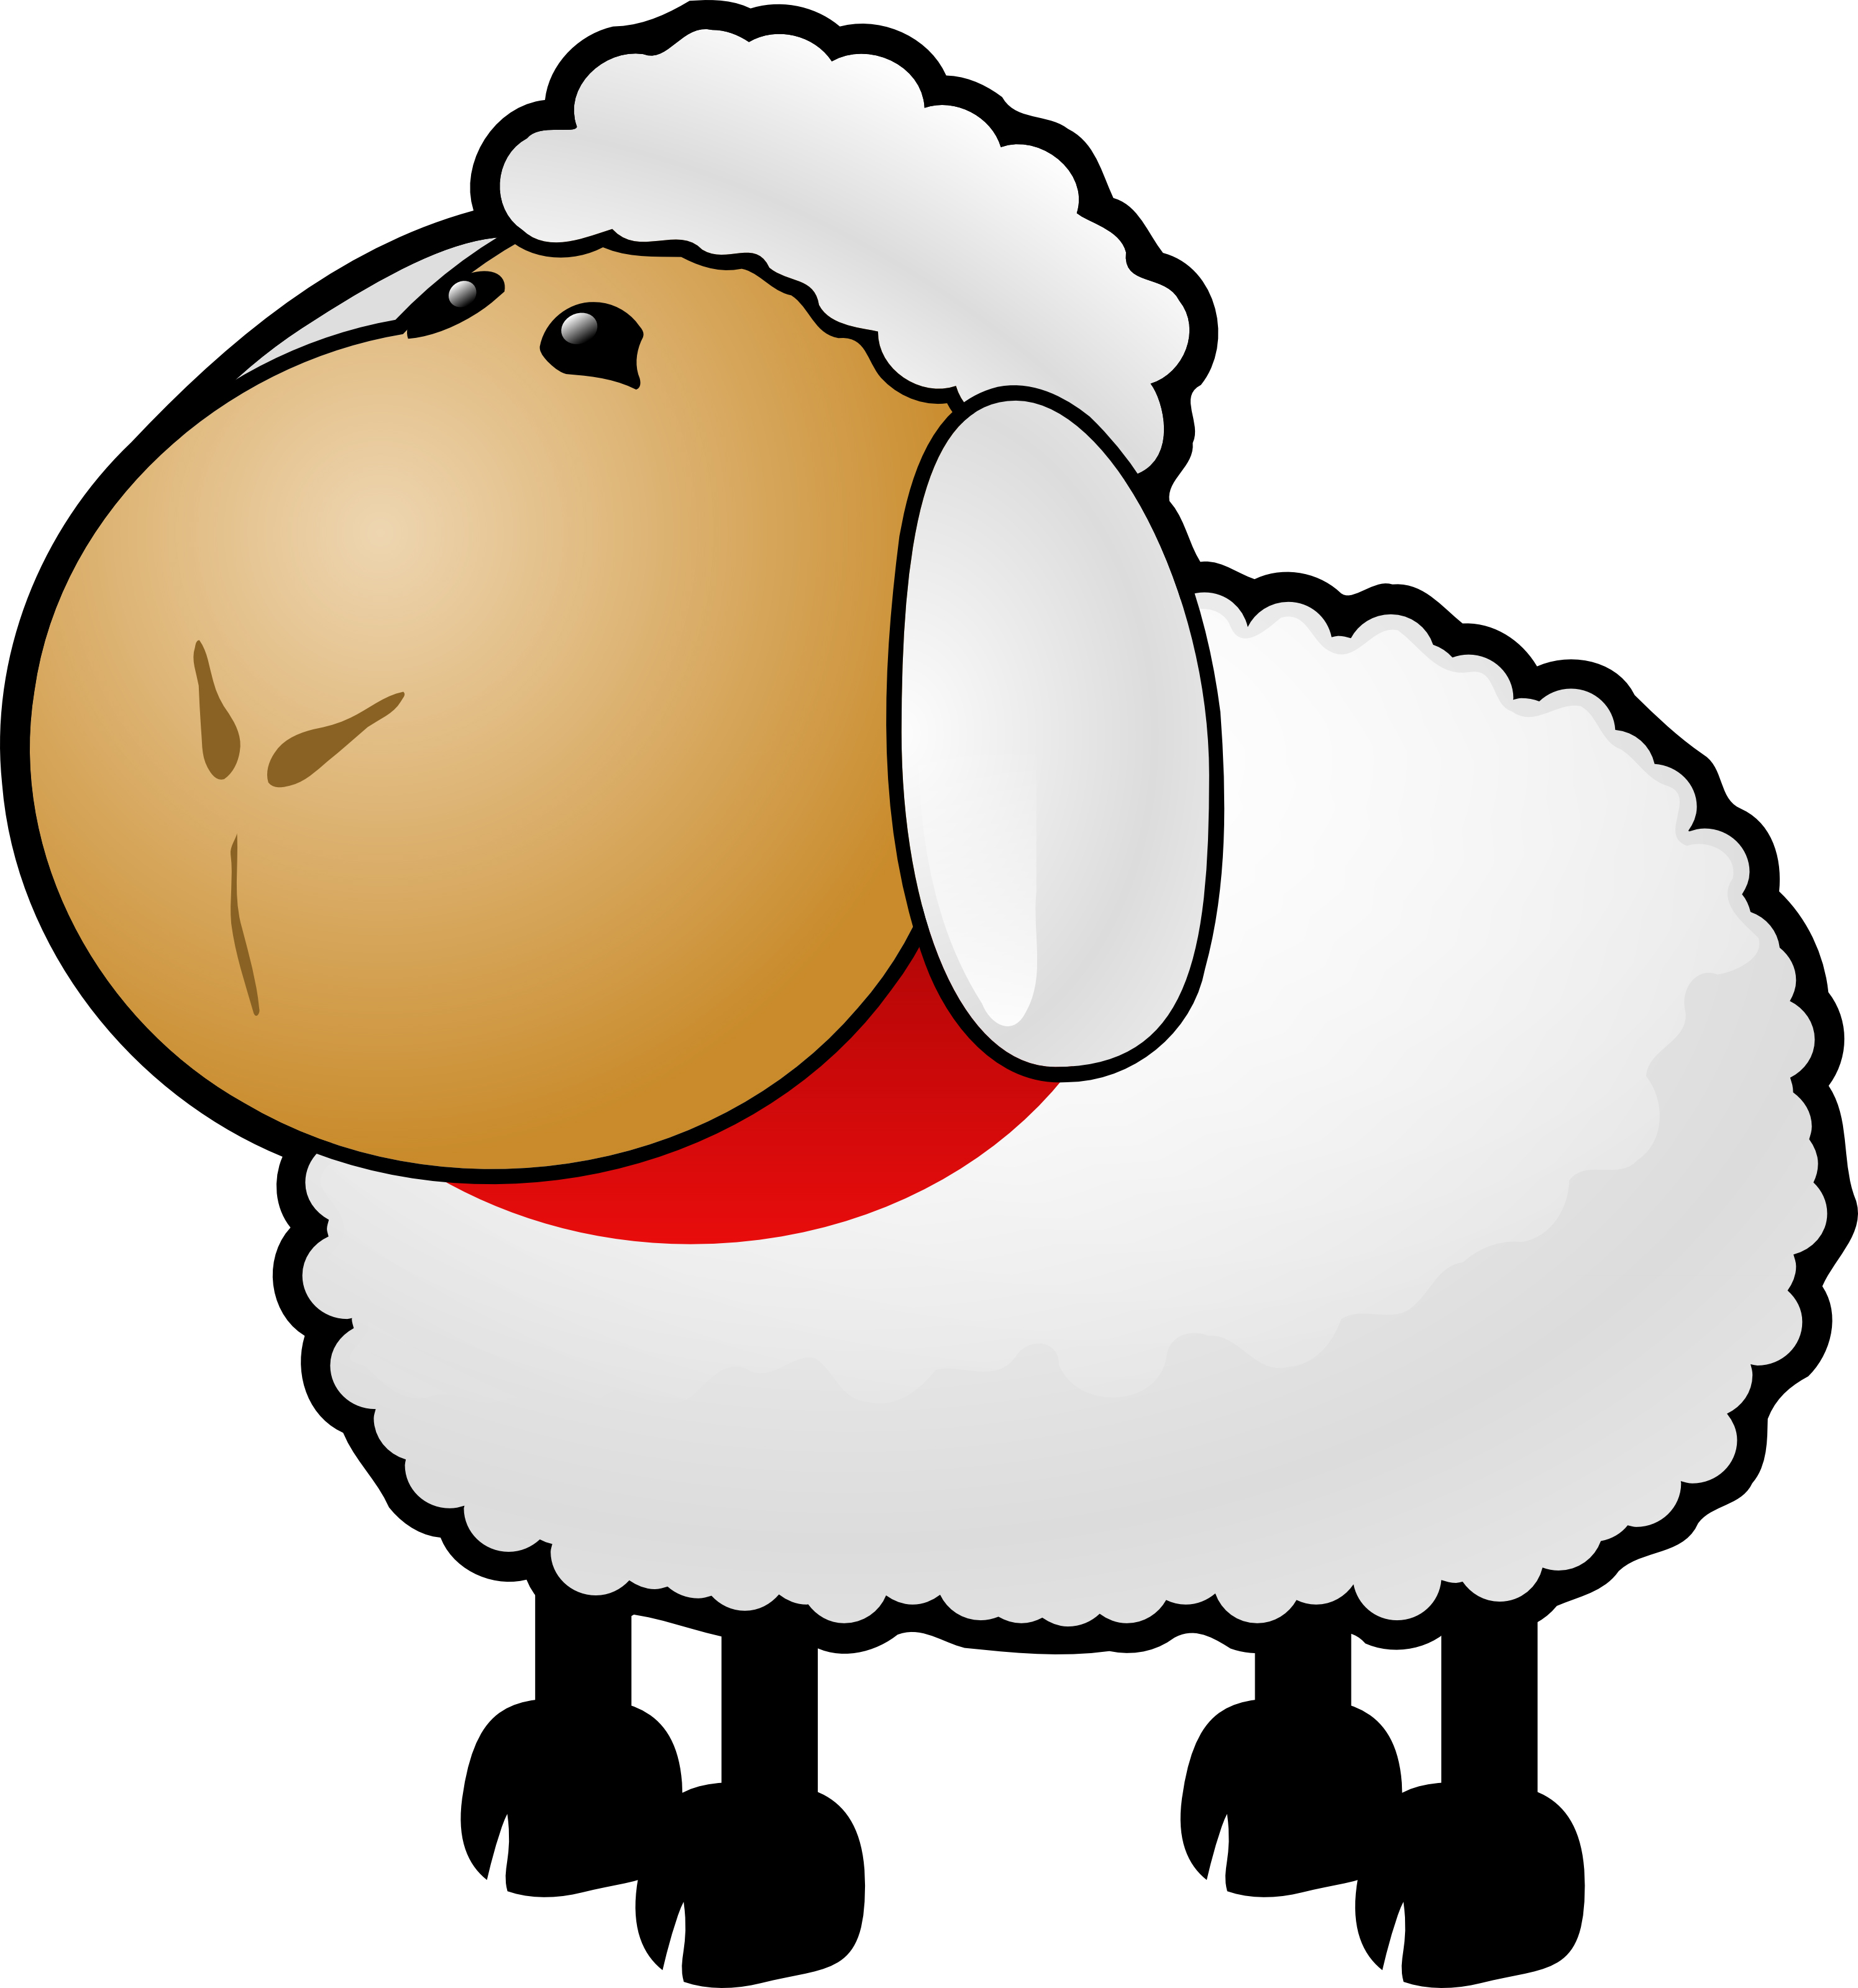 Cartoon Clipart Free U0026middot; Lamb C-cartoon clipart free u0026middot; lamb clipart u0026middot; lamb clipart-3